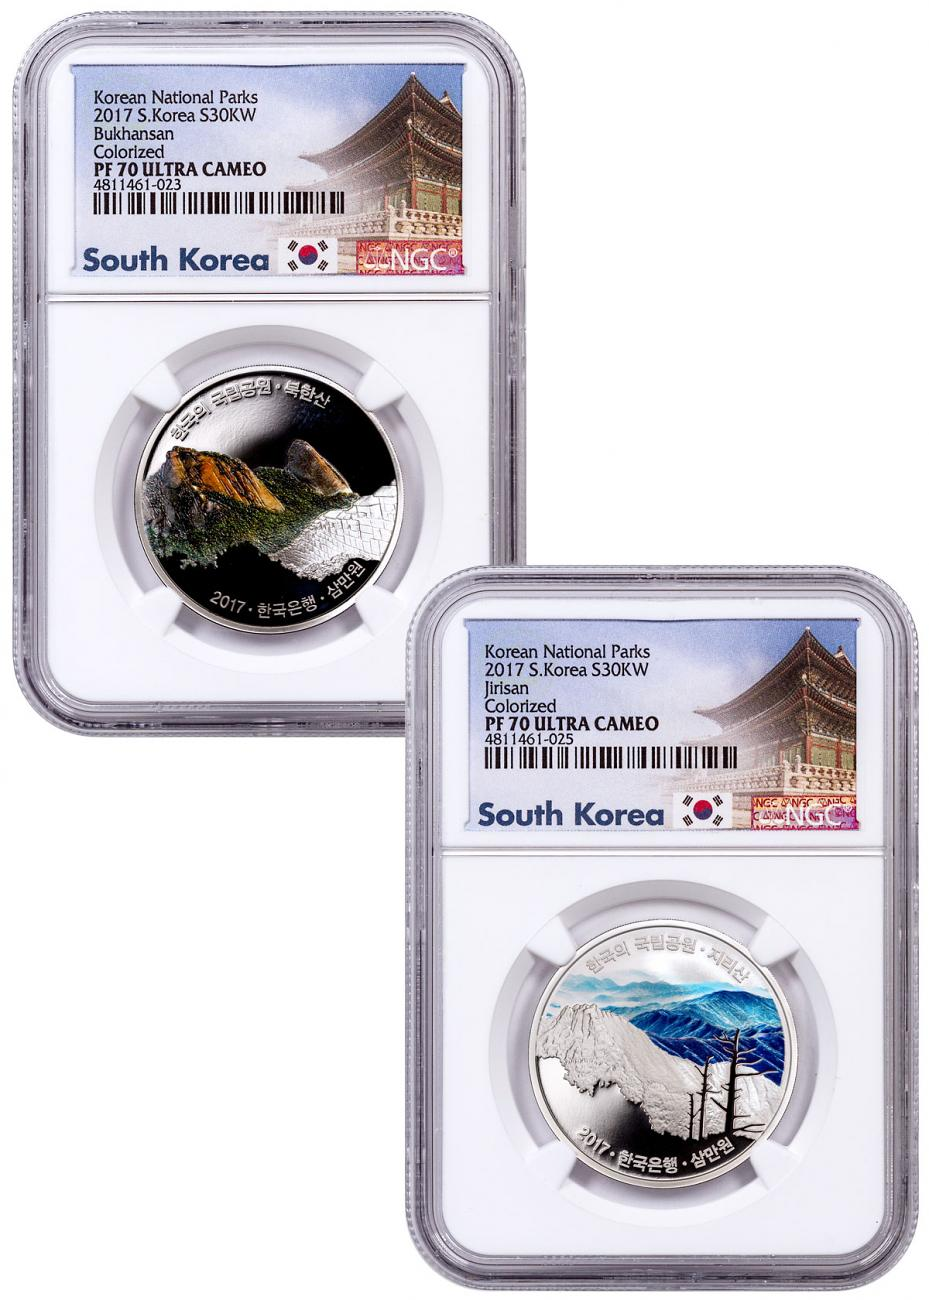 2017 South Korea National Parks - 2-Coin Set Silver Proof Coin NGC PF70 UC Exclusive South Korea Label